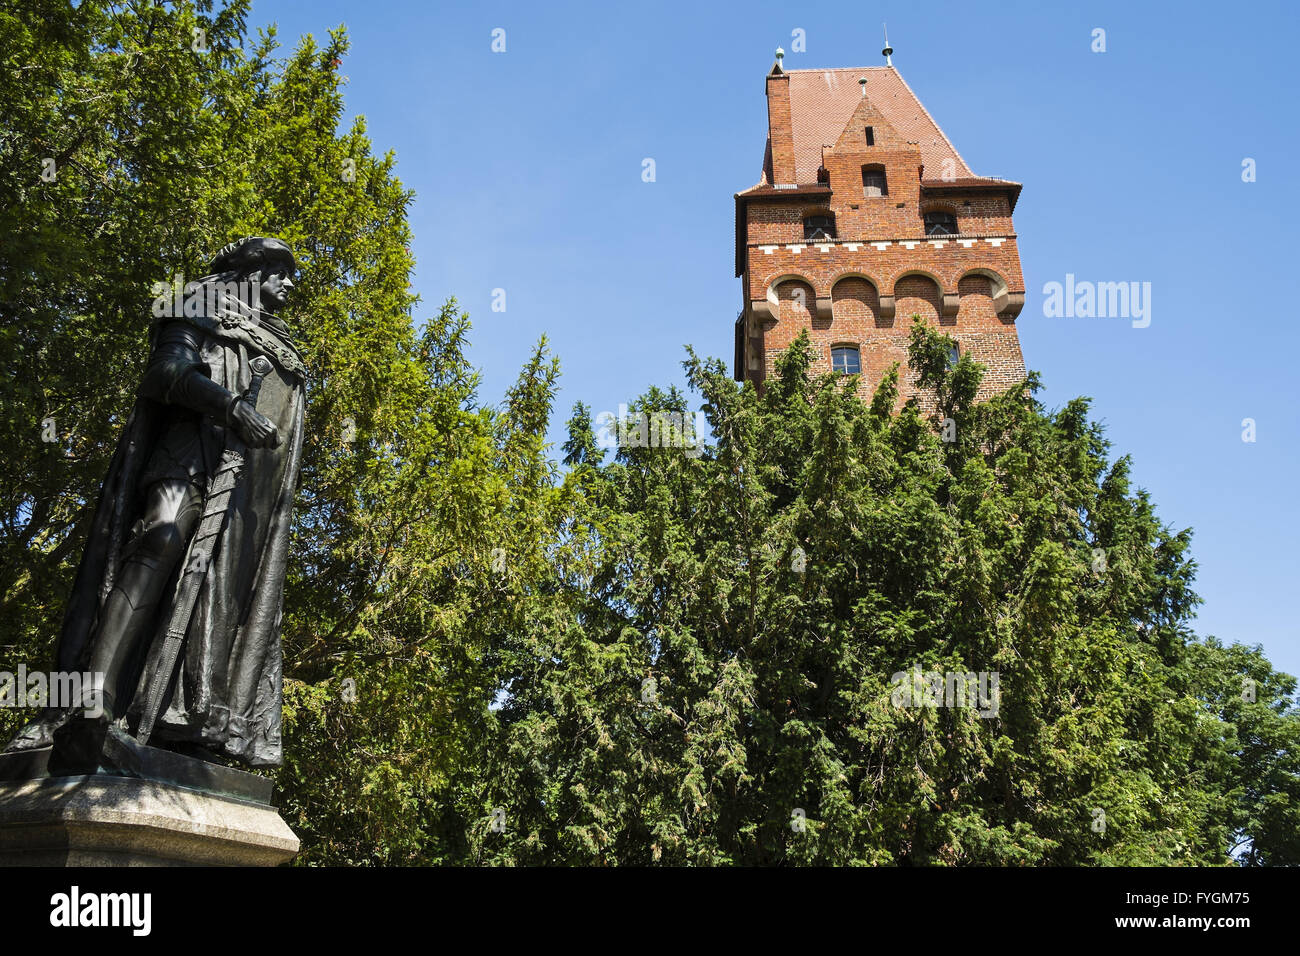 Statue Kurfuerst Friedrich I. - Tangermuende Castl Stock Photo